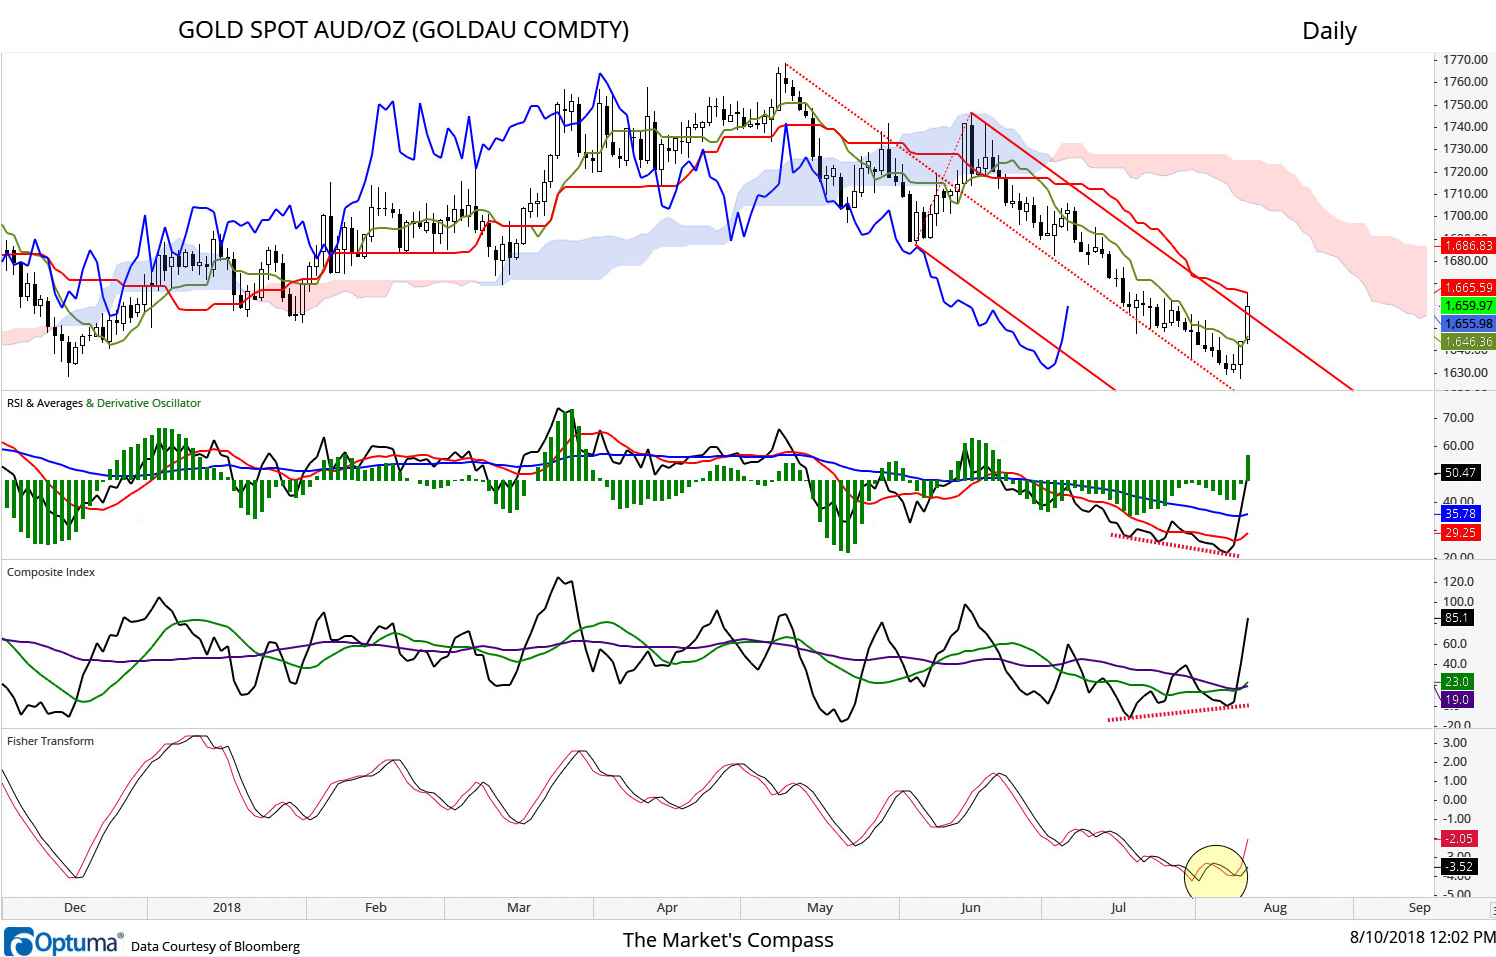 A number of positive technical features have developed over the past few days in Gold in Aussie Dollars. Prices overtook the Upper Parallel of the Standard Pitchfork, the unbridled Composite Index diverged from the new low in RSI, the Derivative Oscillator produced a buy signal and the Fisher Transform turned at a higher low through its signal line. Next hurdle will be at the Kijun Line where it found resistance today.